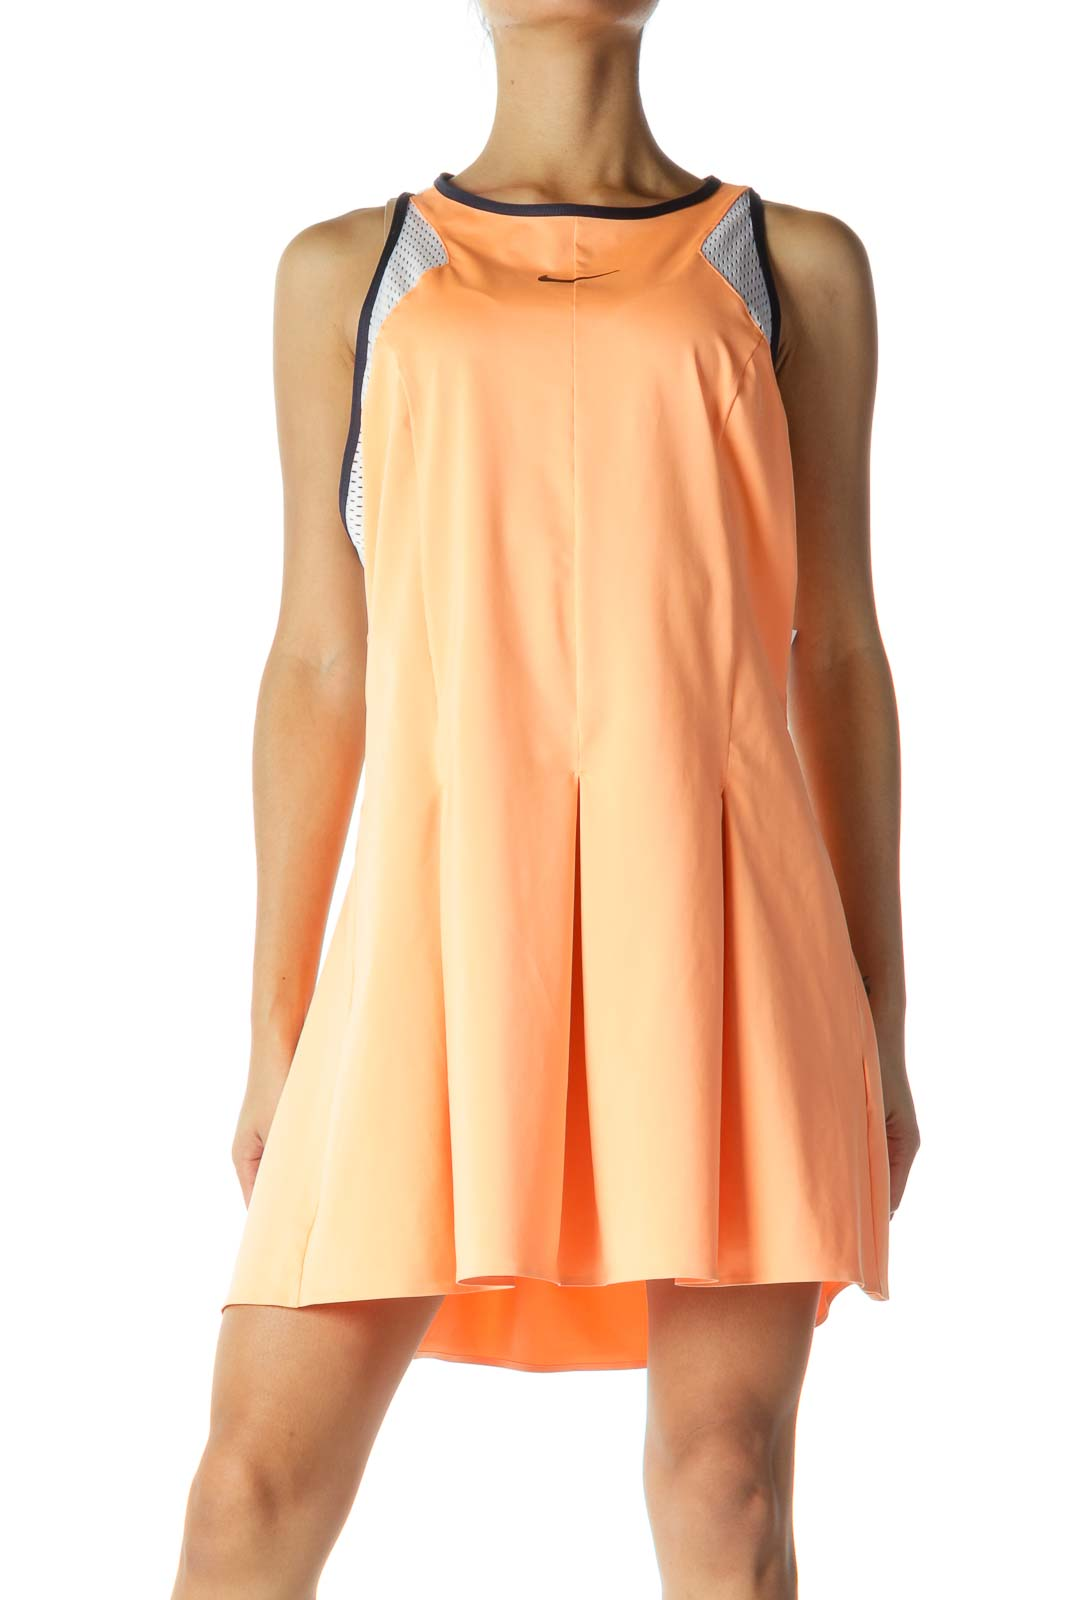 Orange and White Pleated Tennis Dress